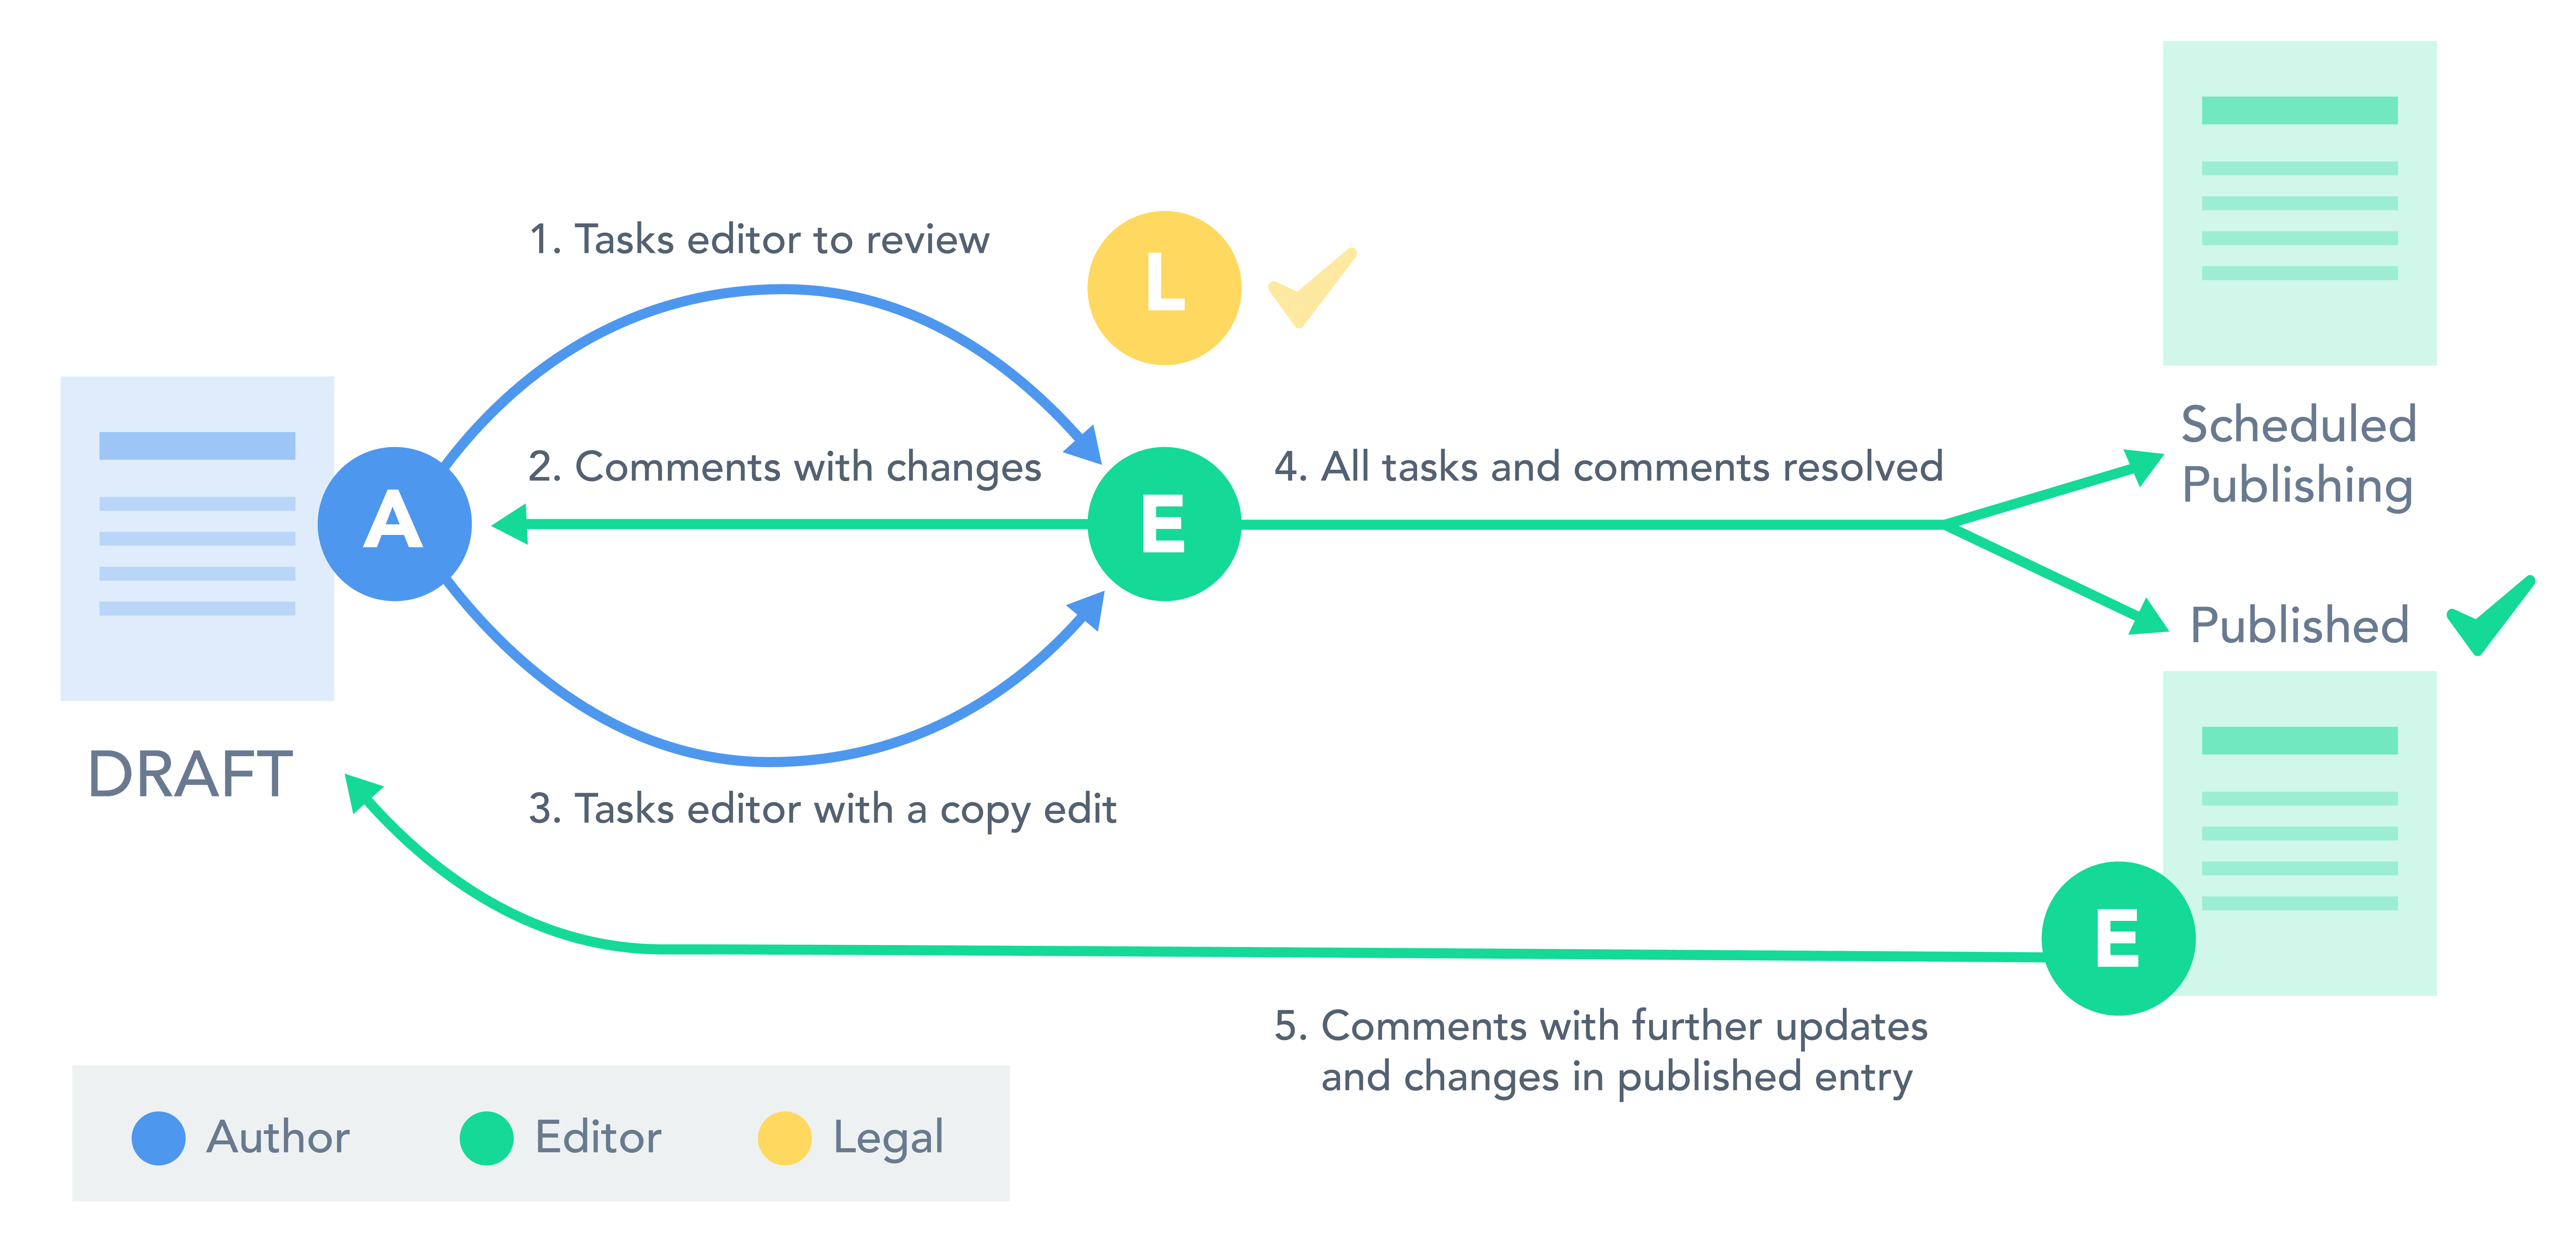 Image depicting a workflow with only an Author, Editor and Legal representative present in the team